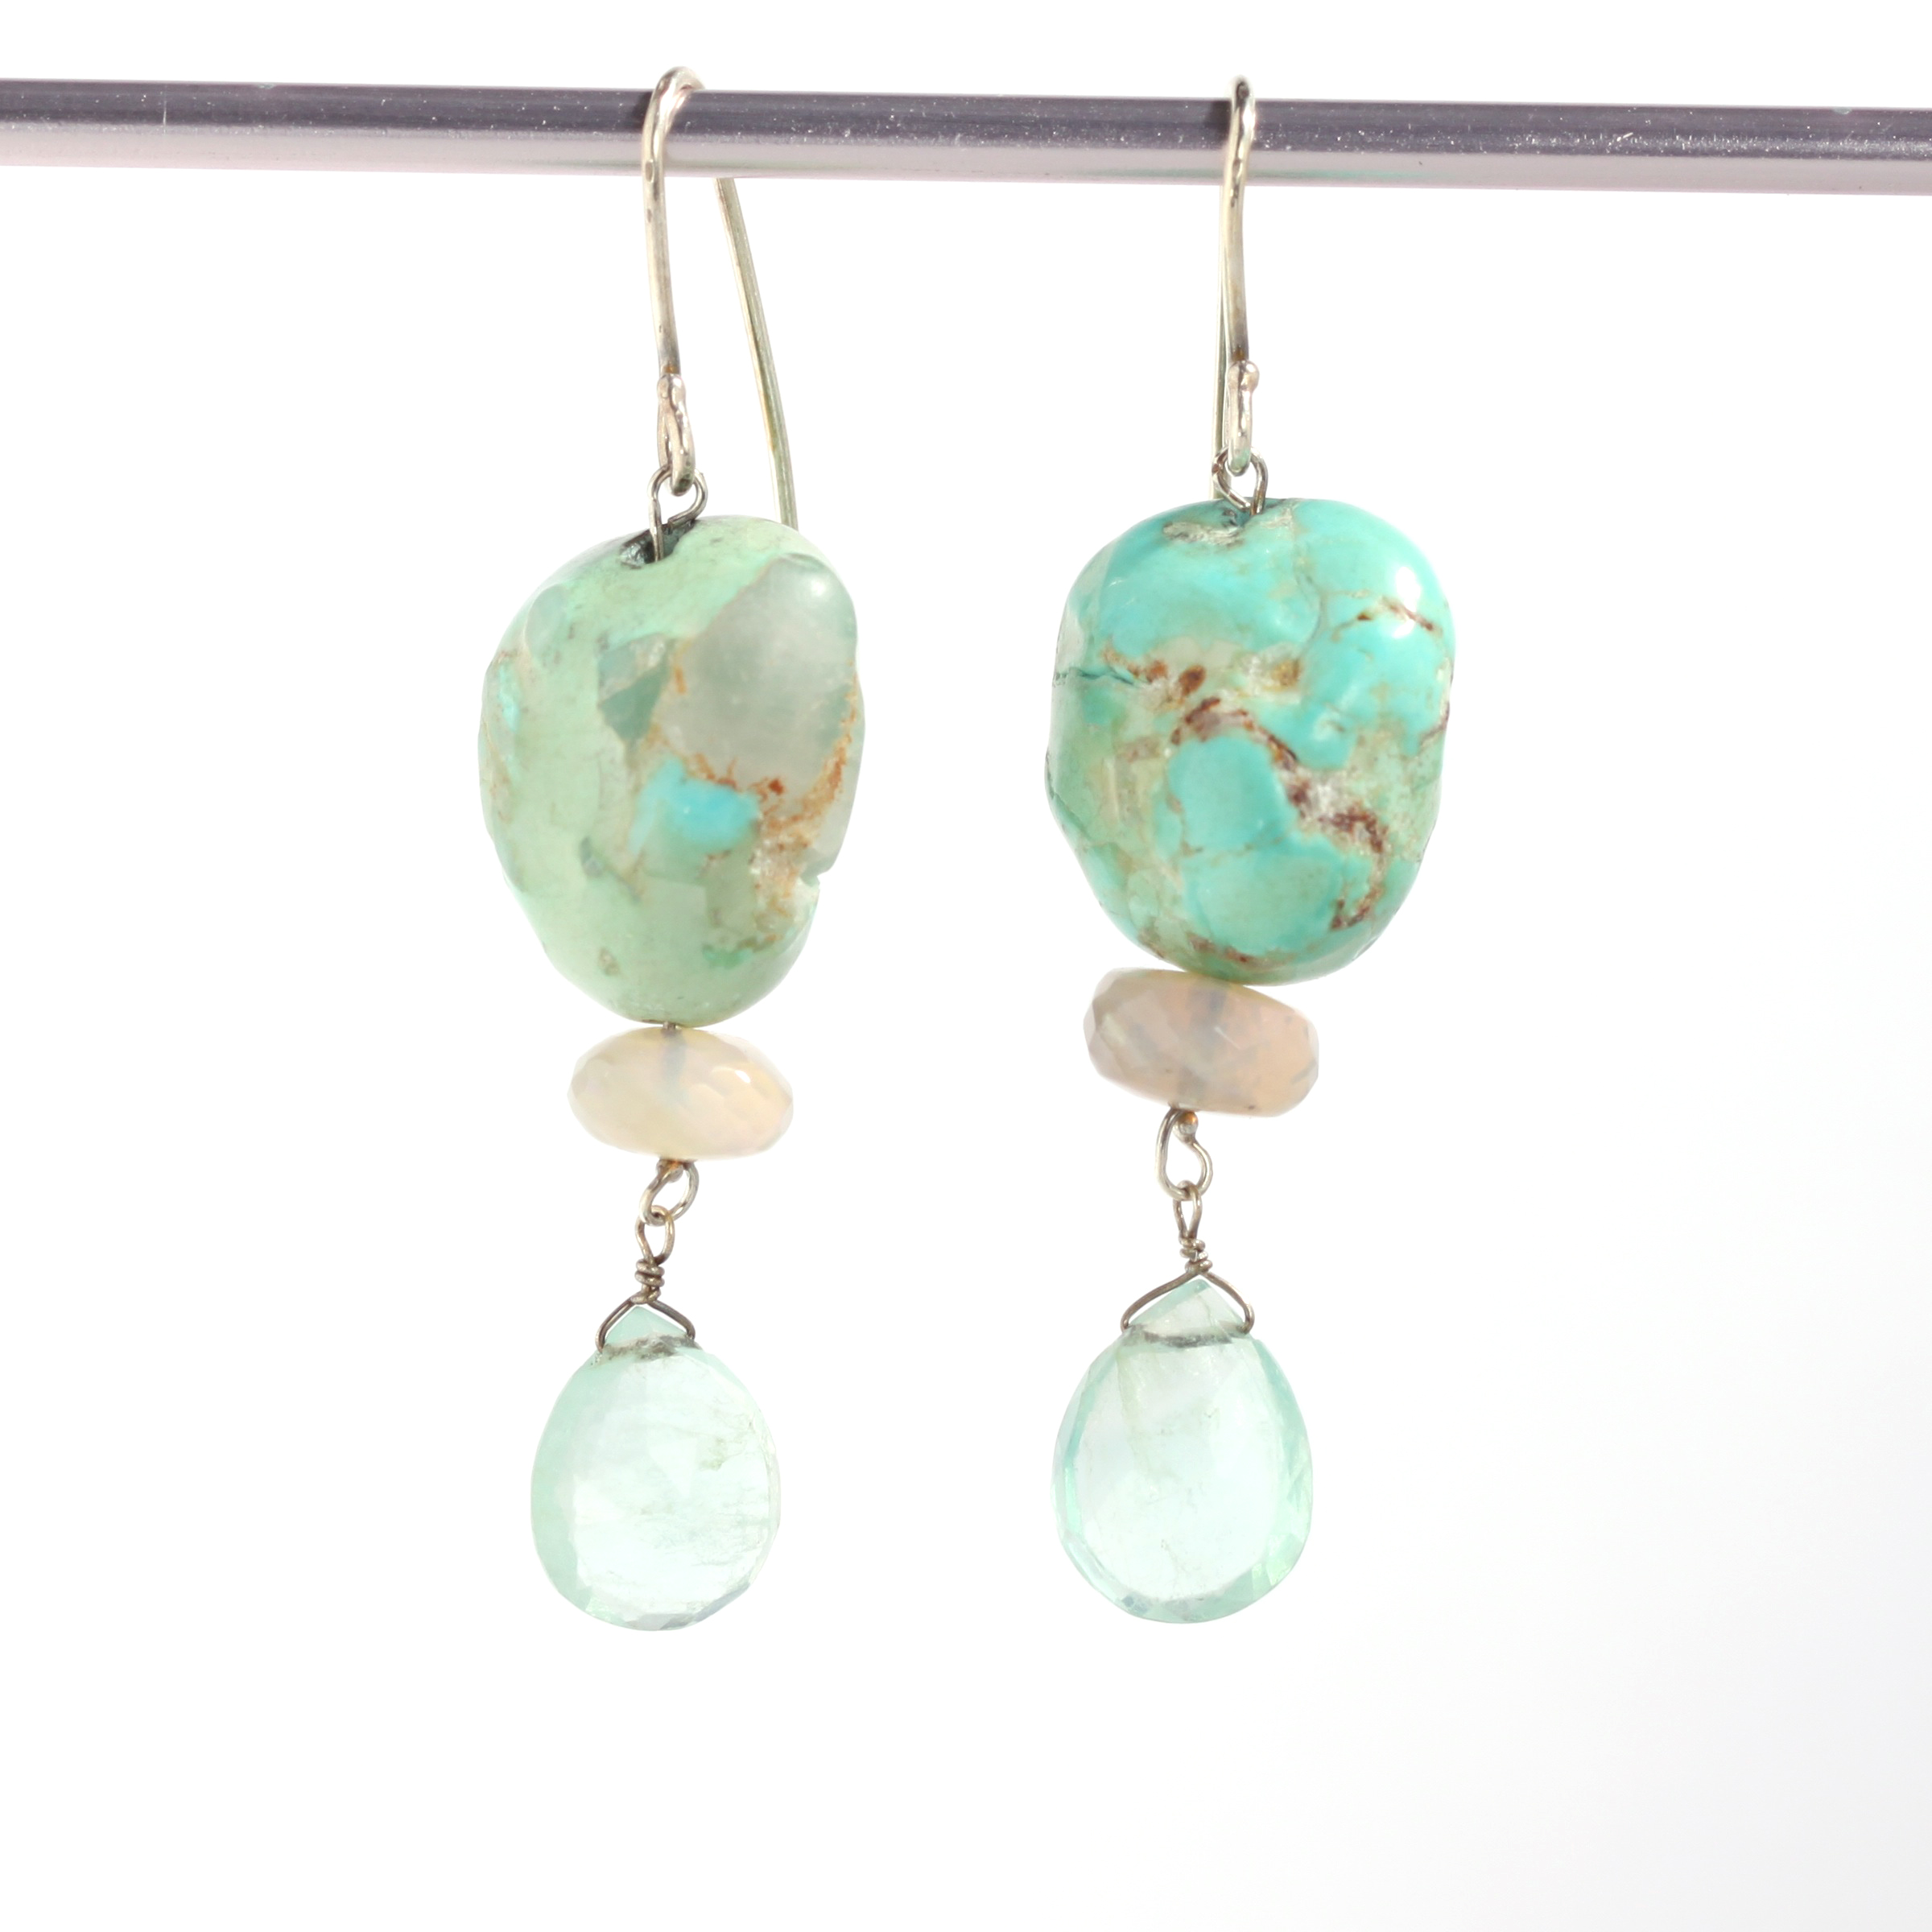 Natural Turquoise Nugget Earrings With Australian Opals & Blue/Green Fluorite Briolettes